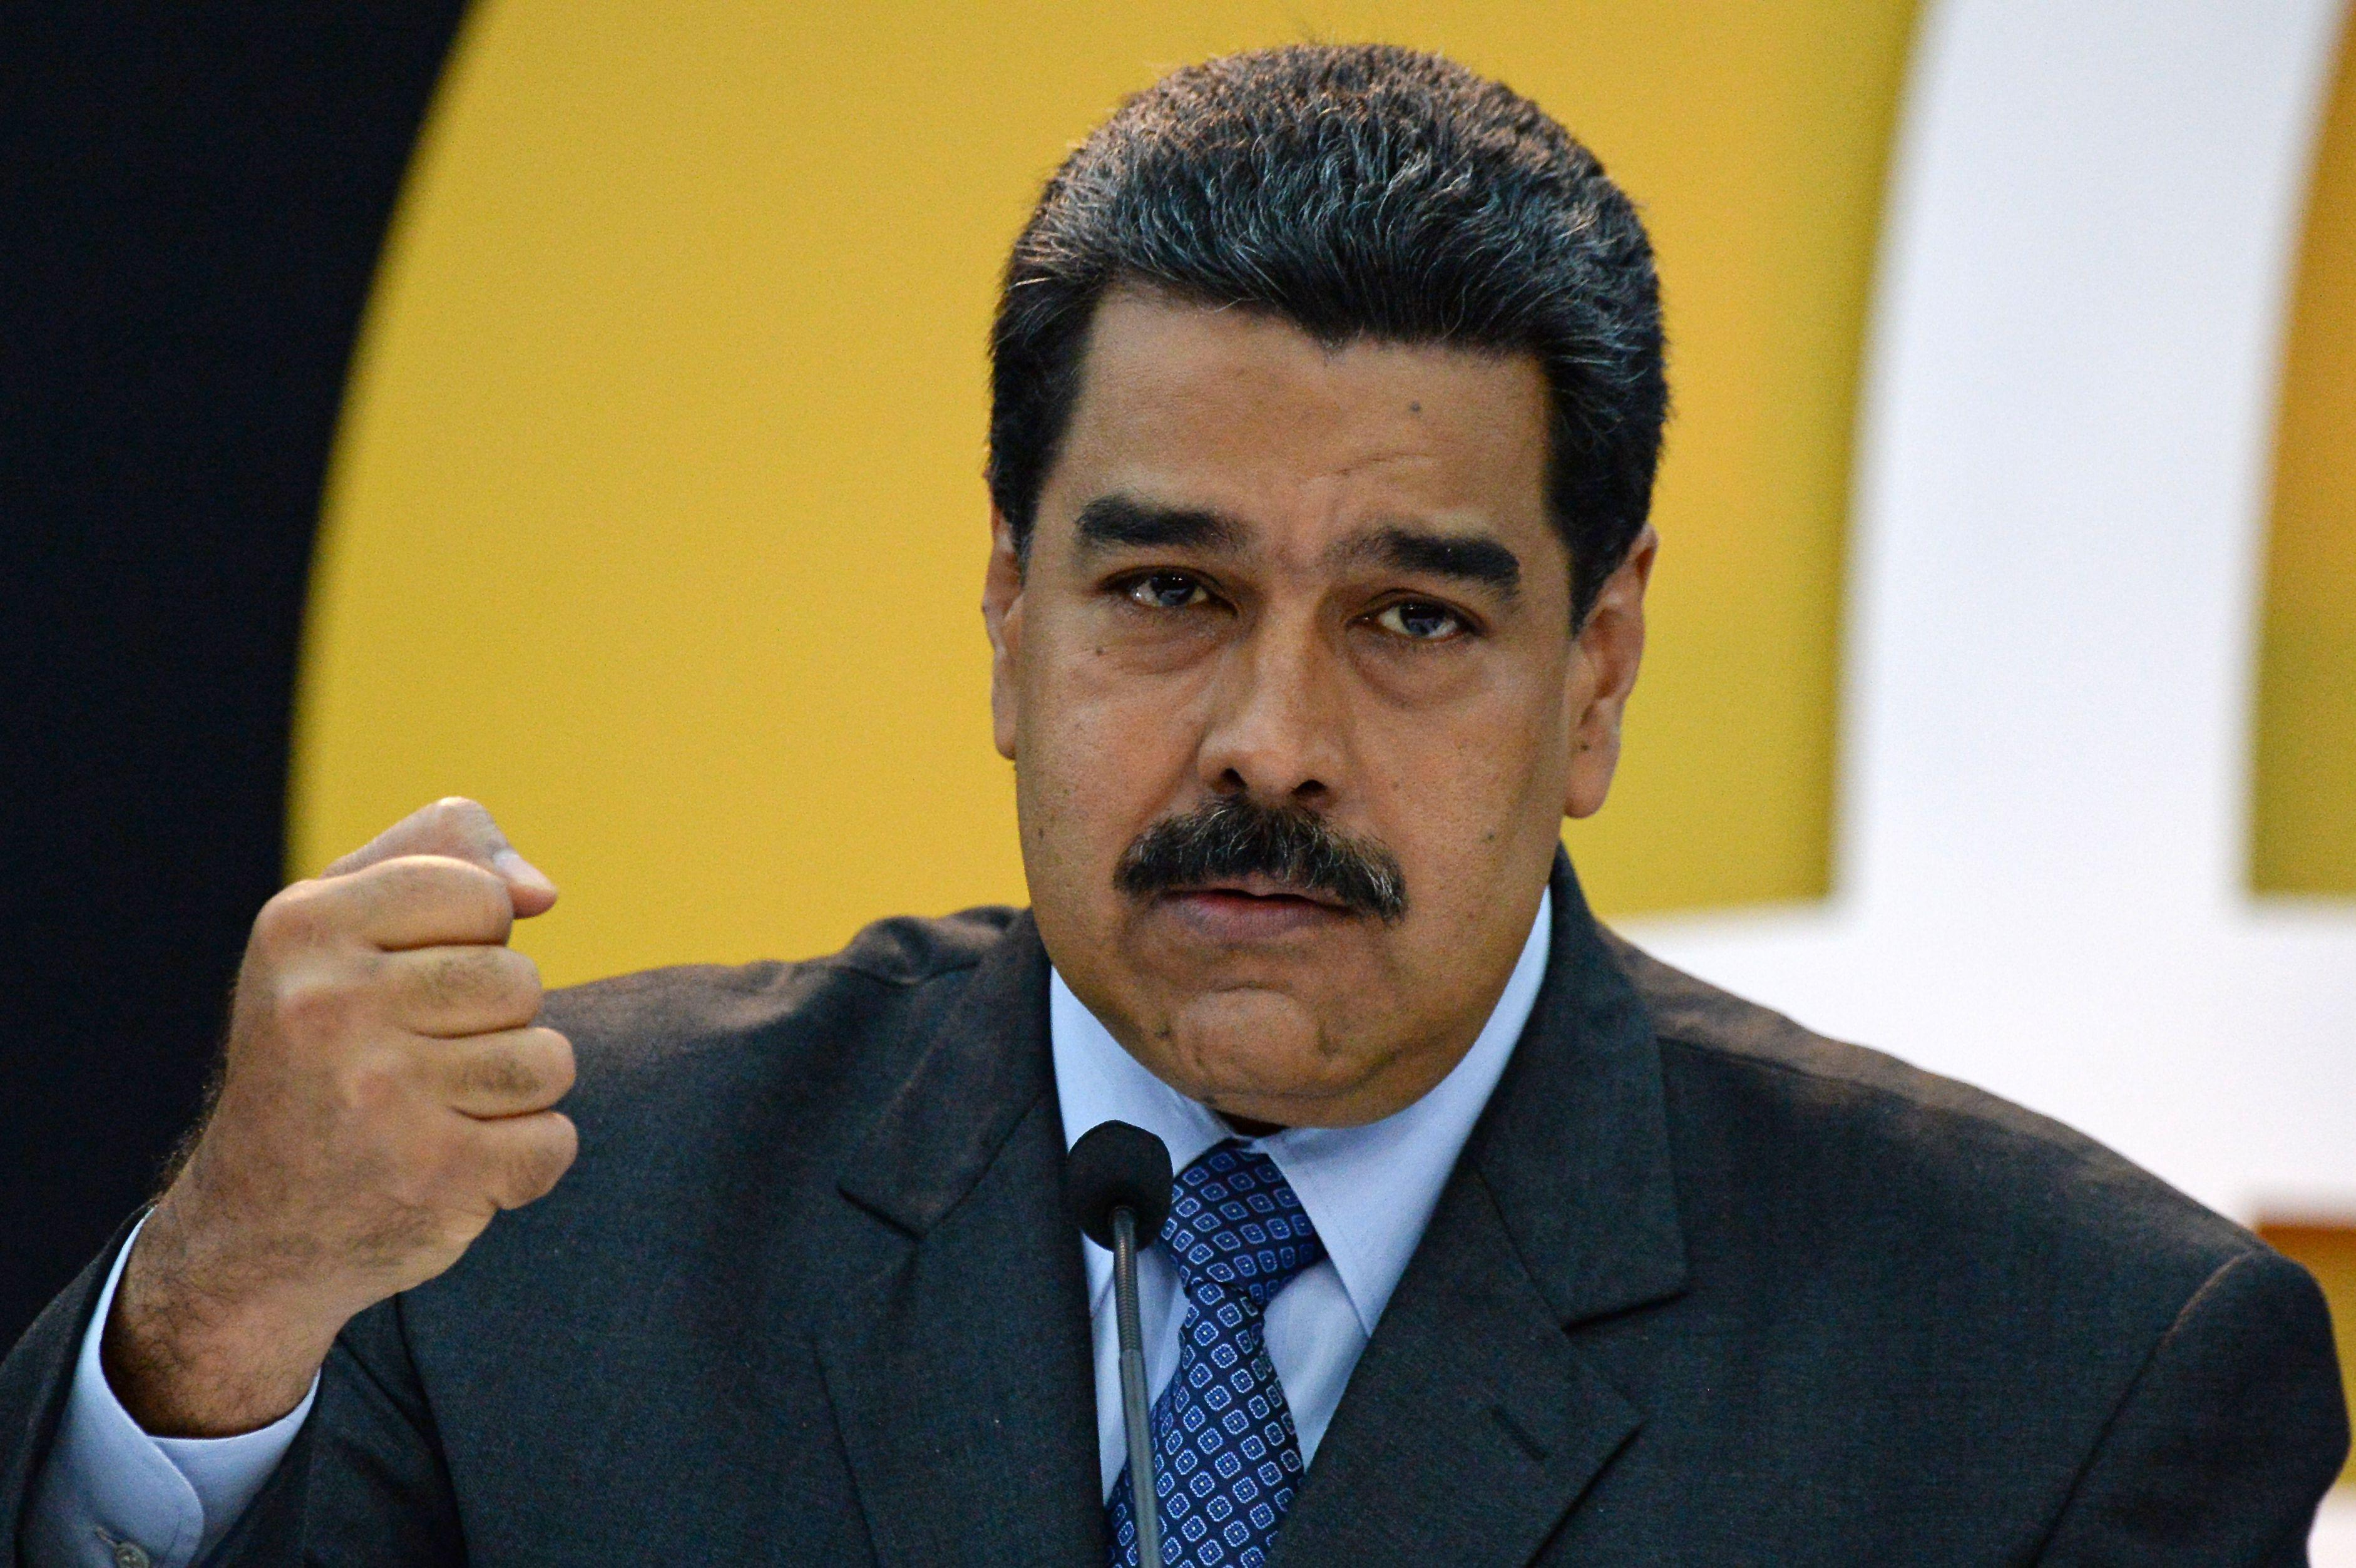 """Venezuela's President Nicolas Maduro during a press conference to launch to the market a new oil-backed cryptocurrency called """"Petro."""""""